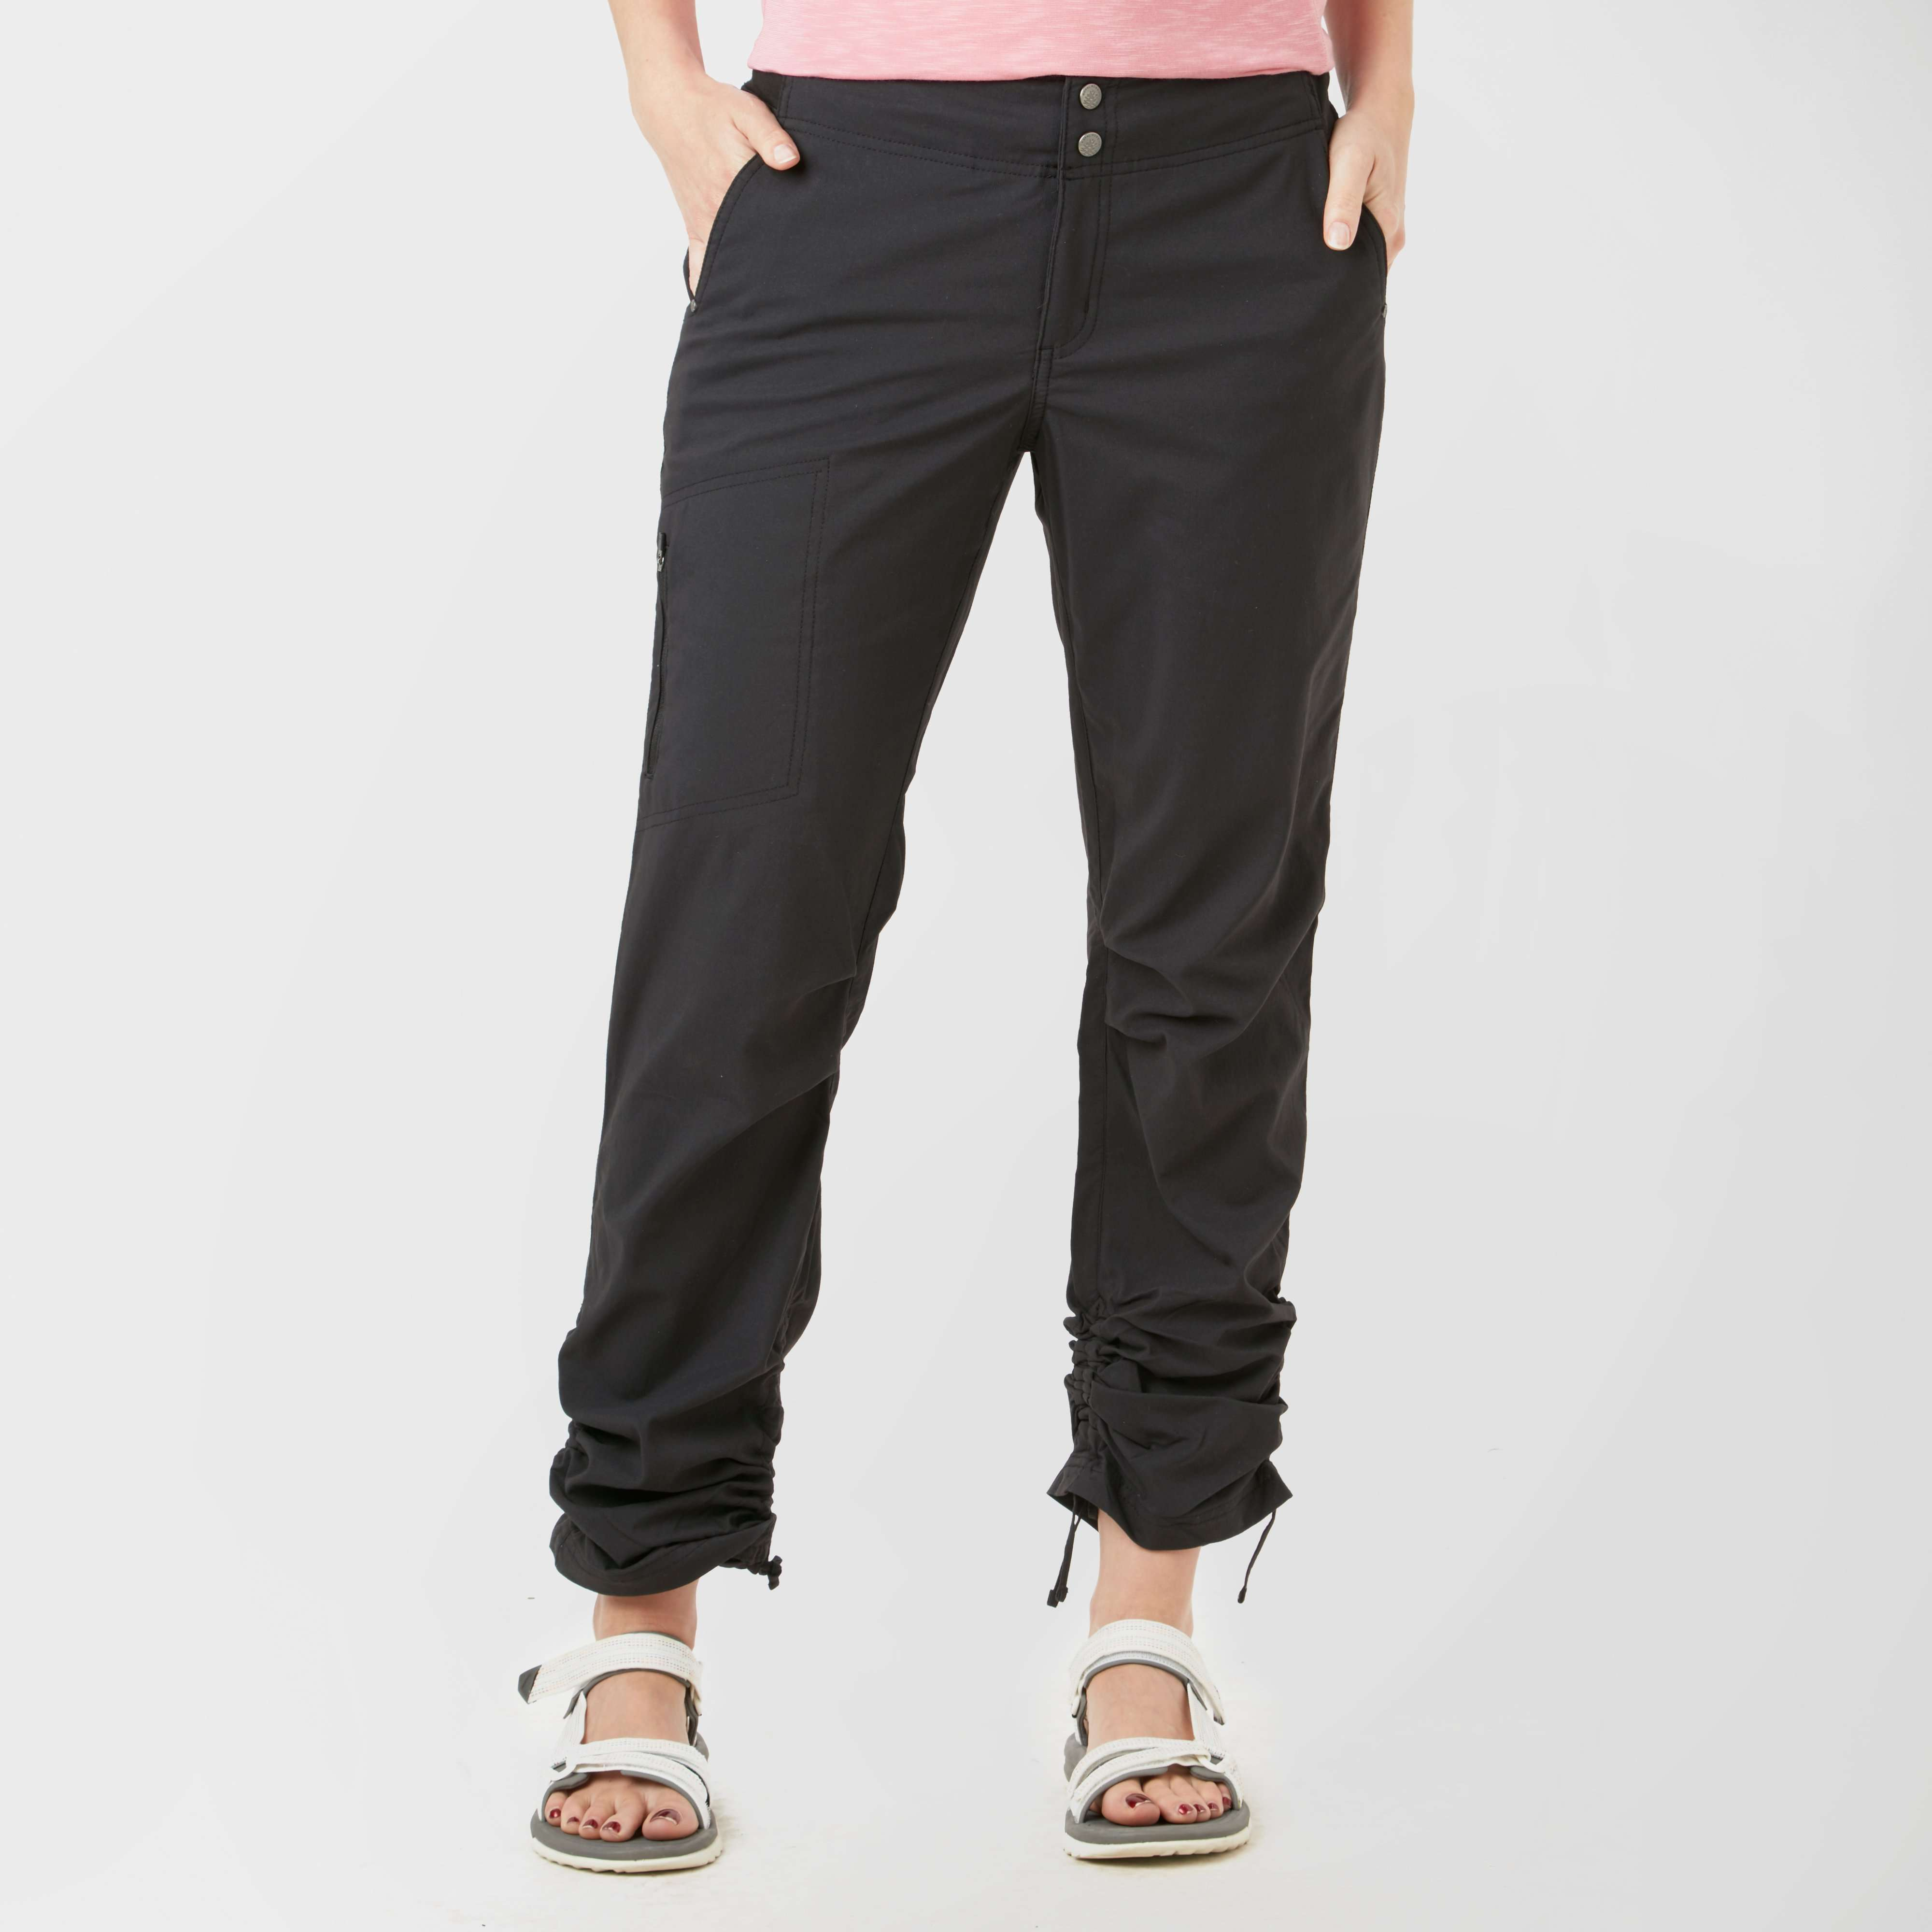 ROYAL ROBBINS Women's Jammer II Pants